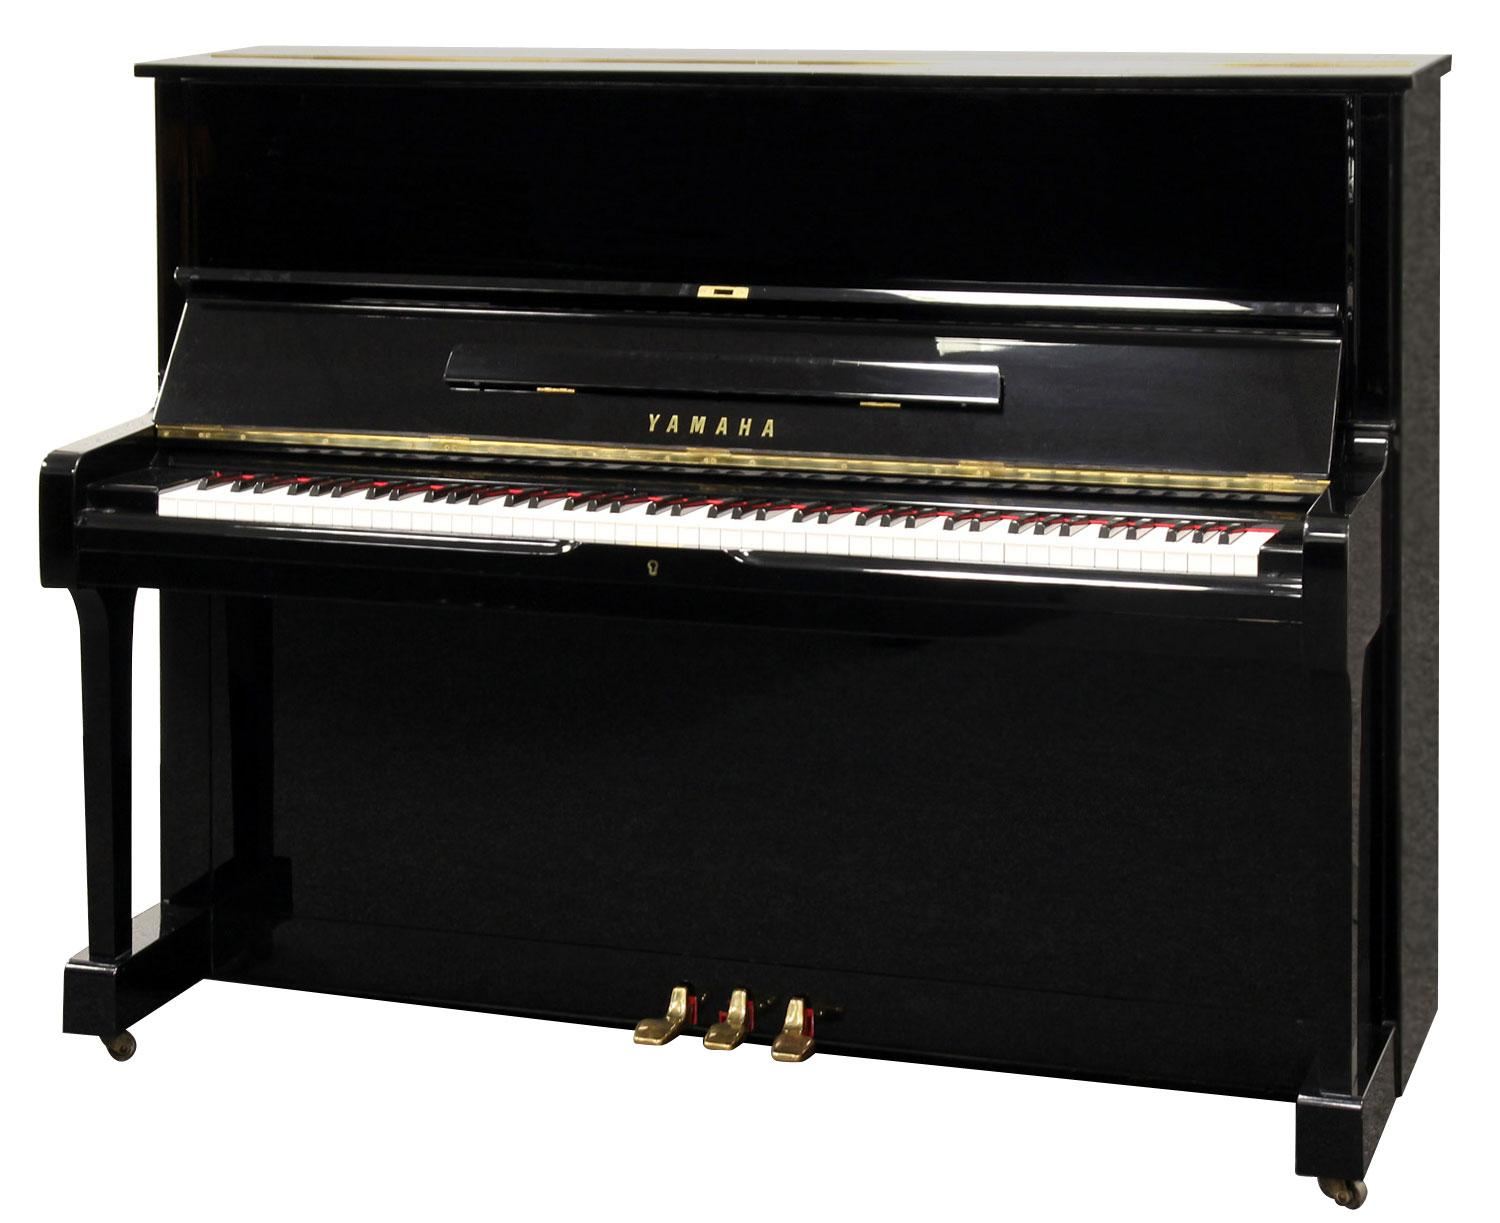 yamaha u1 klavier schwarz poliert gebraucht. Black Bedroom Furniture Sets. Home Design Ideas